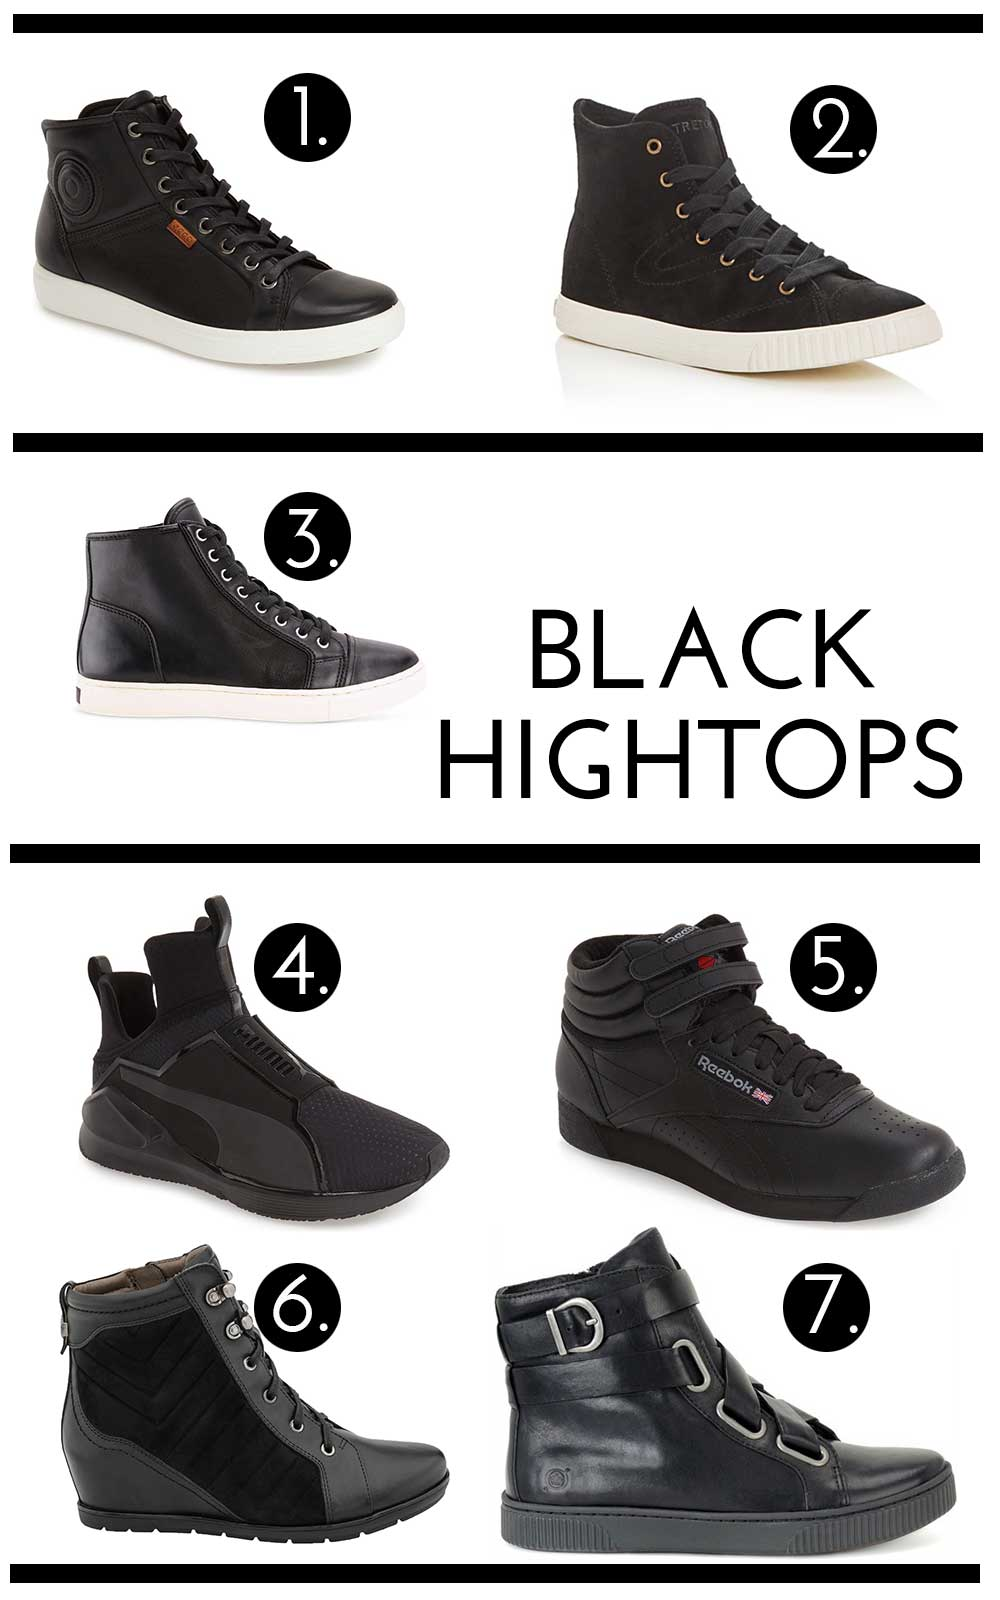 Minimal black high-tops for fall